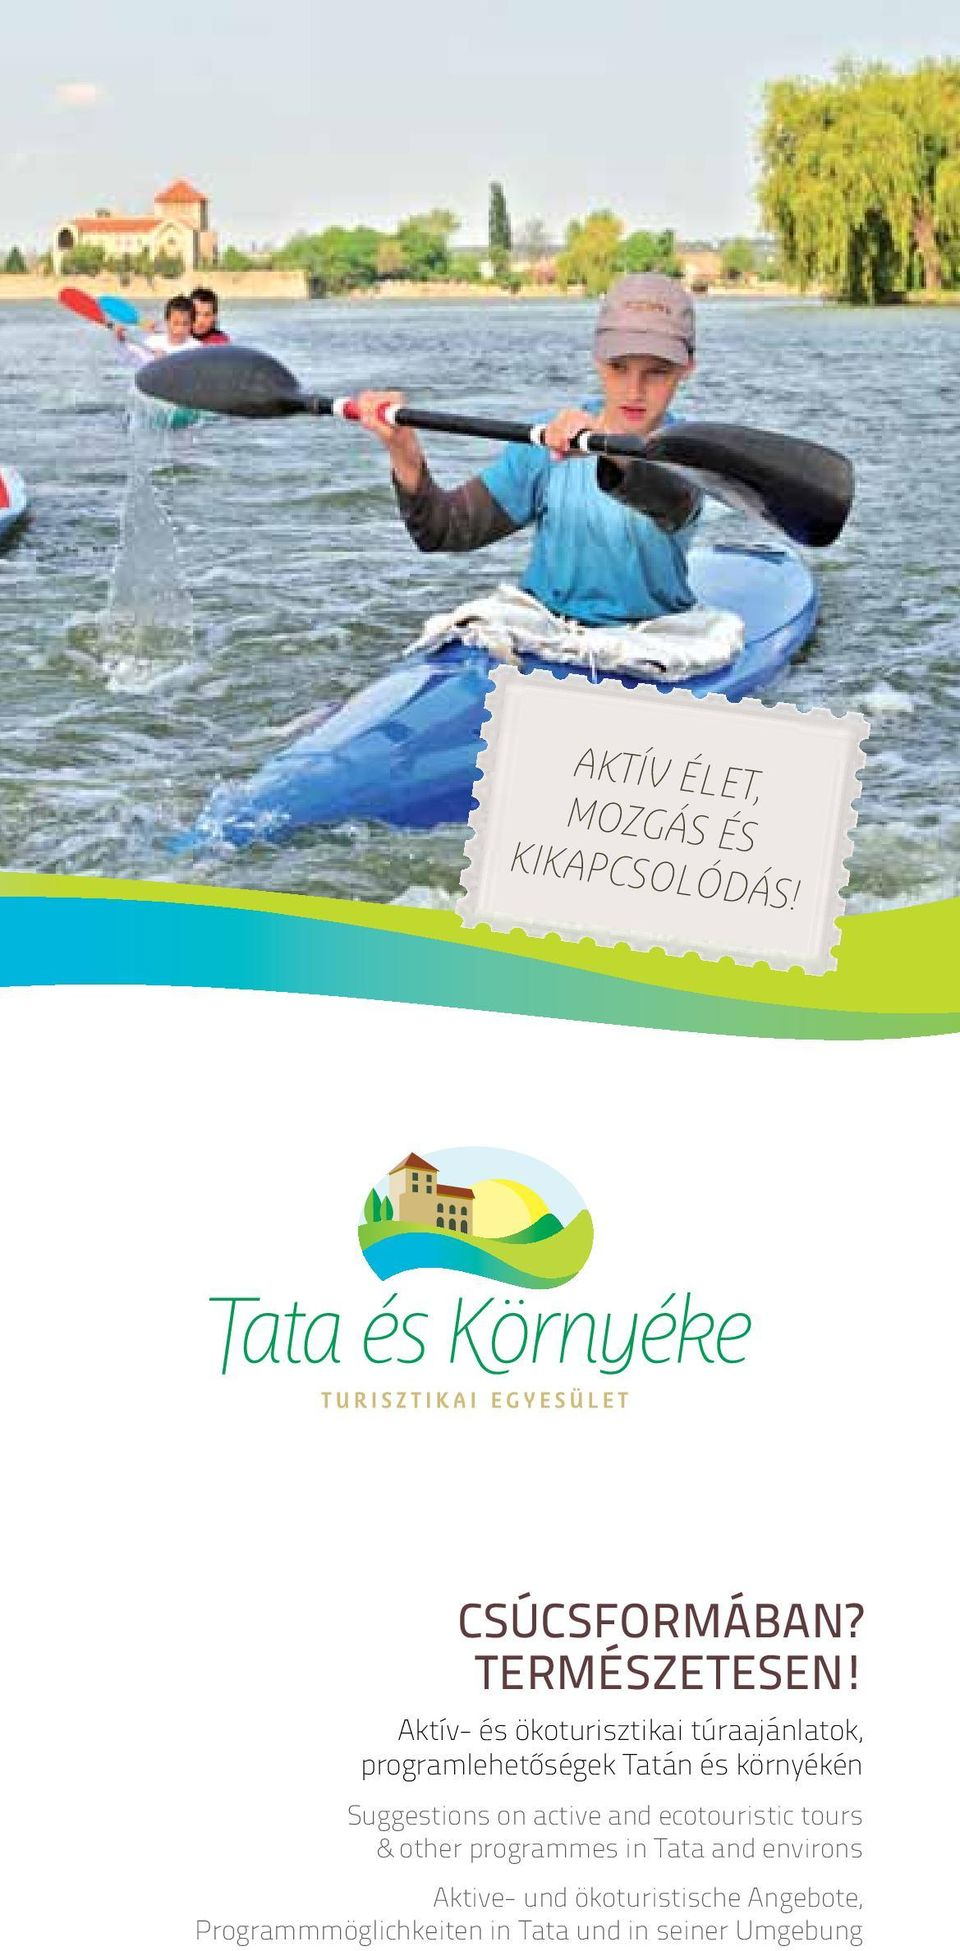 Suggestions on active and ecotouristic tours & other programmes in Tata and environs